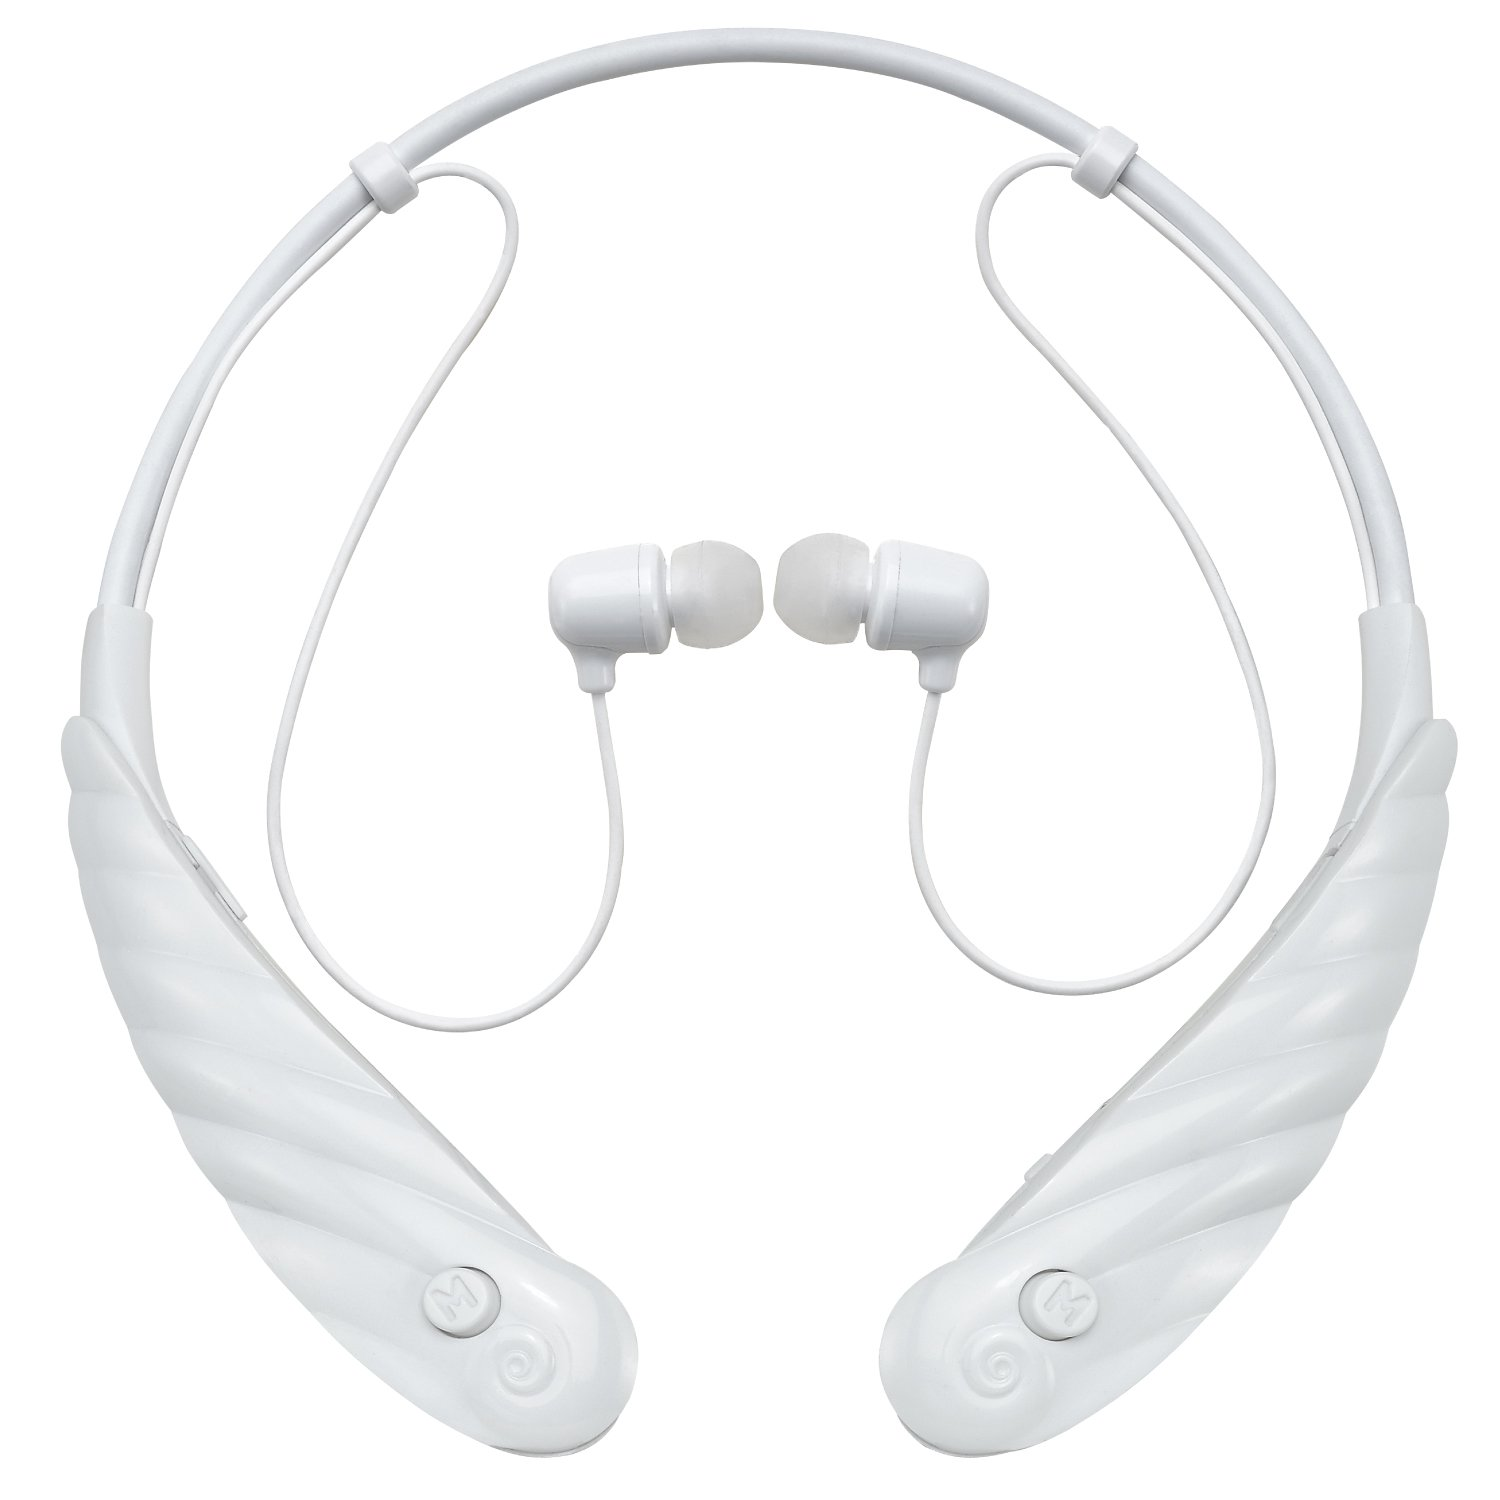 Mimitakara (Active White) FDA Registered Rechargeable Hearing Amplifier, with Bluetooth earphone technology by Mimitakara